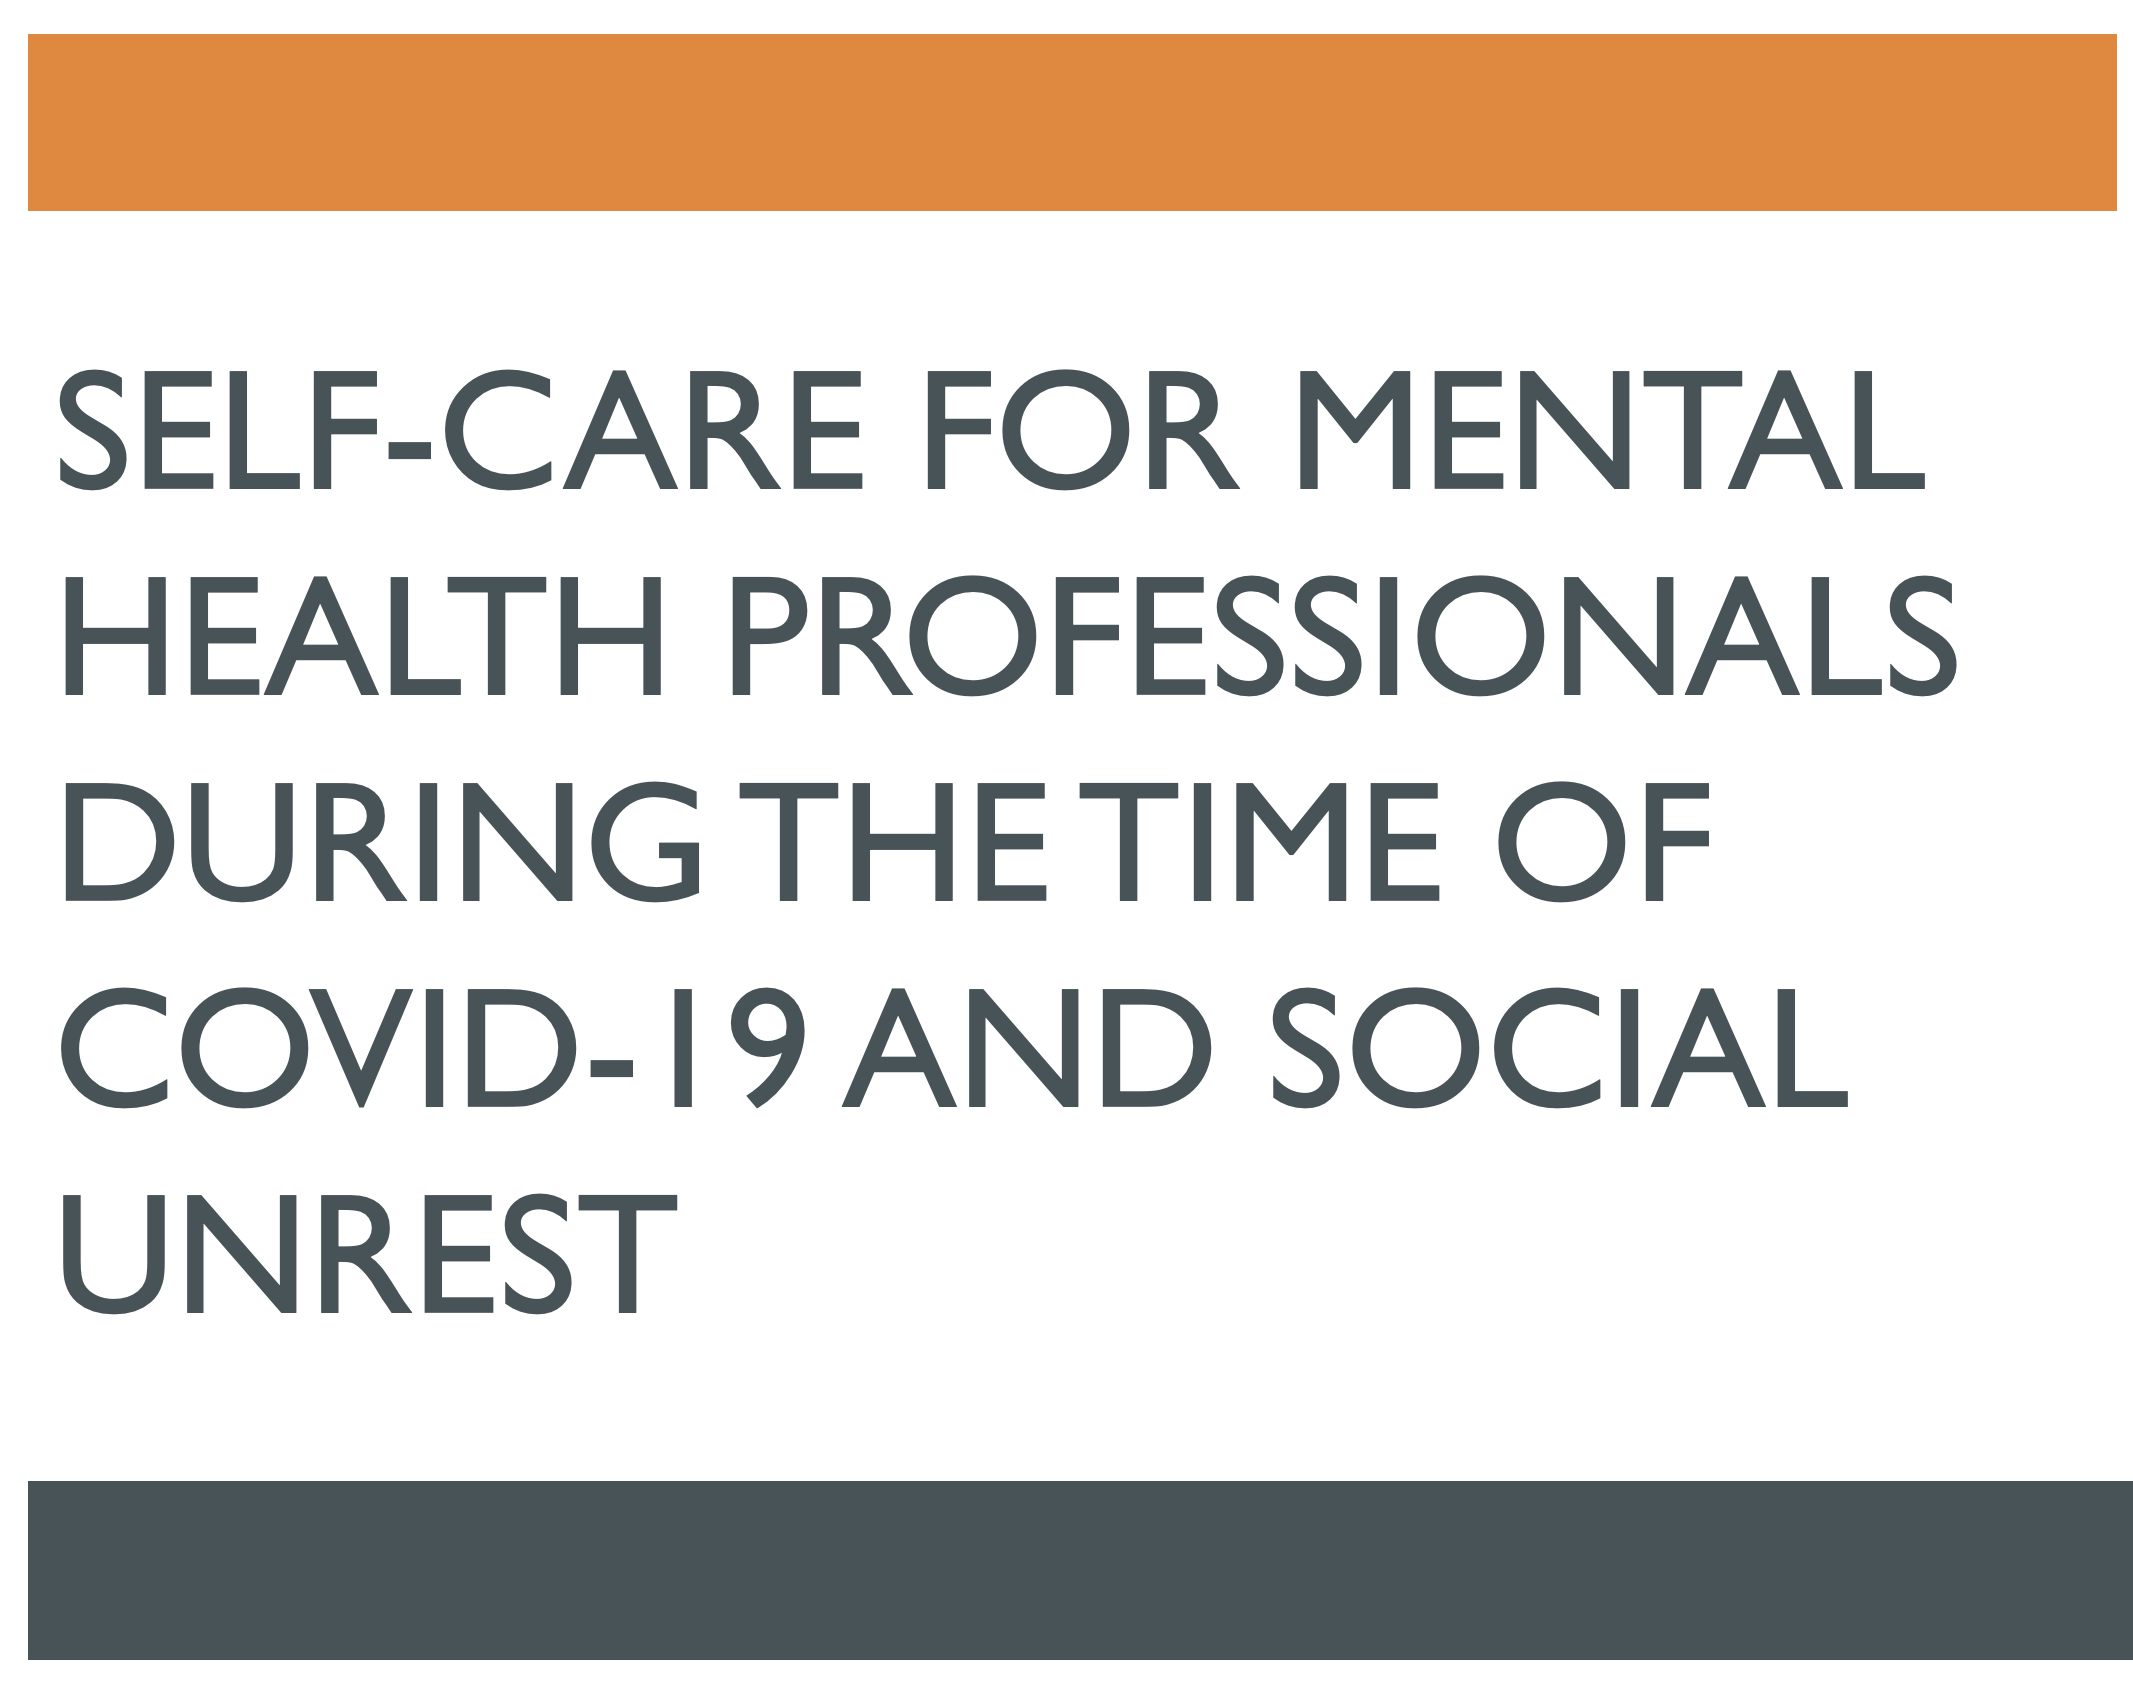 Self-Care for Mental Health Professionals During the Time of COVID-19 and Social Unrest (Archived Version) $20 Image